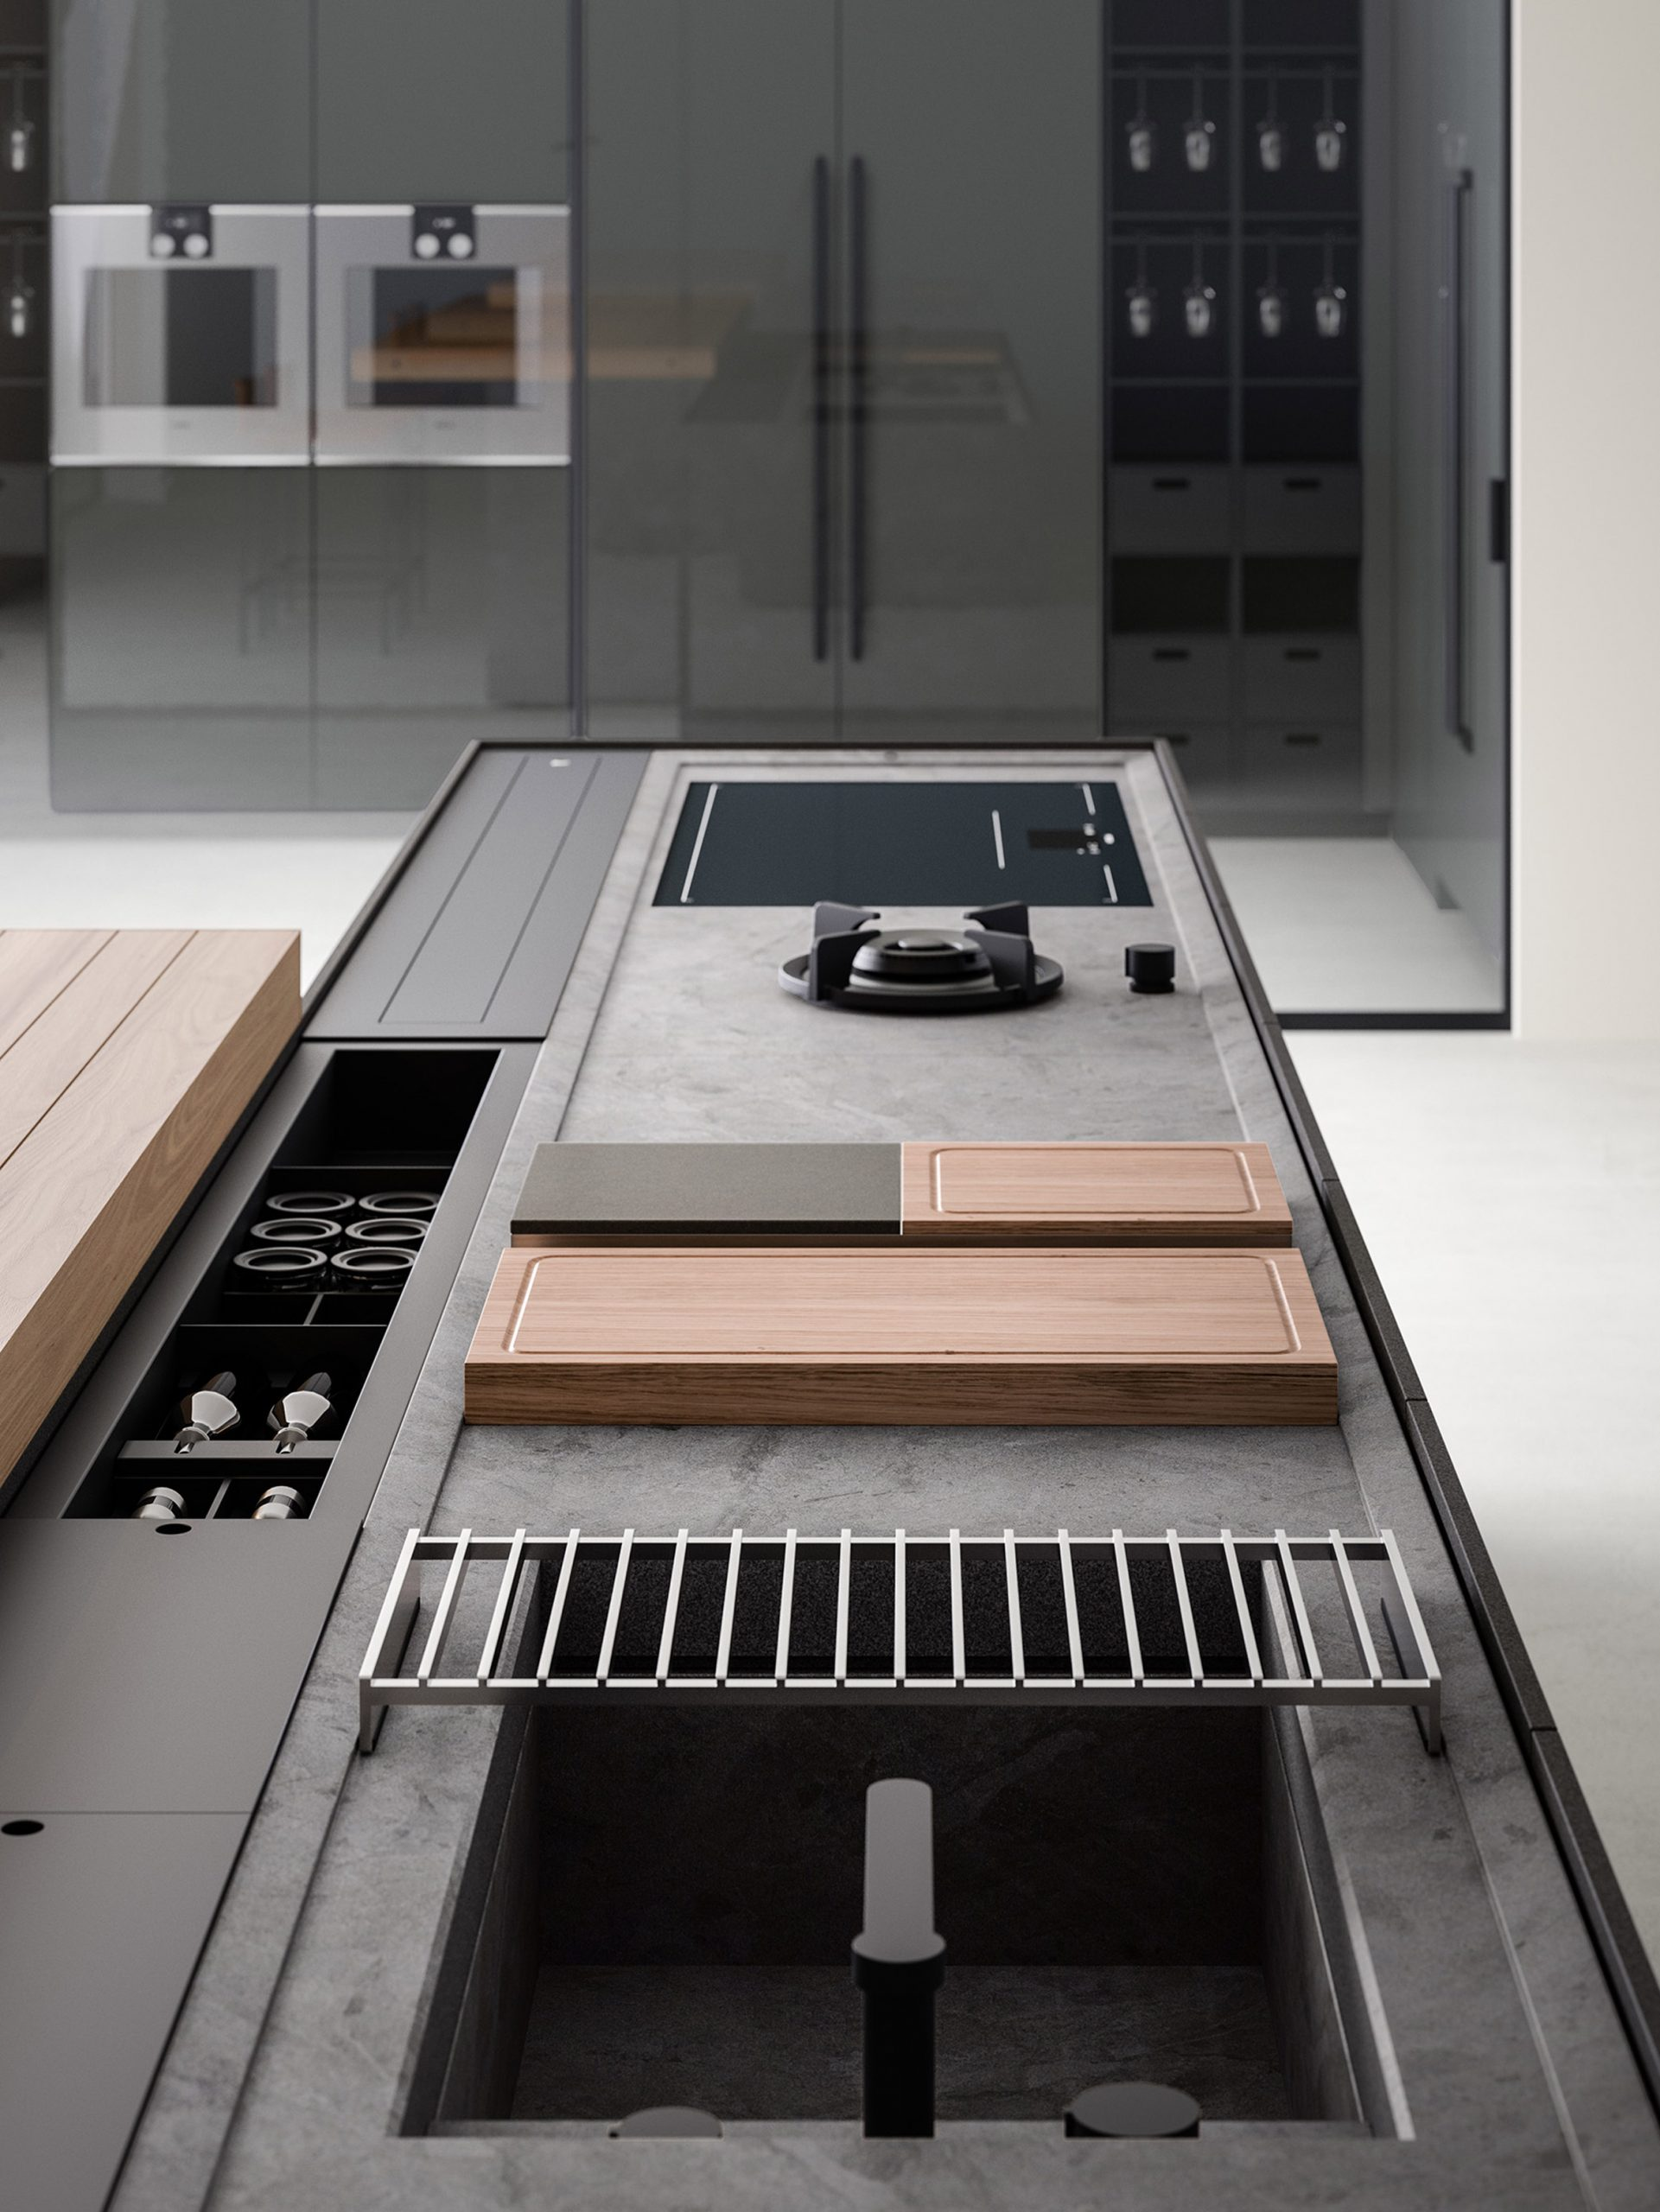 Integrated Inside System storage compartments on a kitchen island